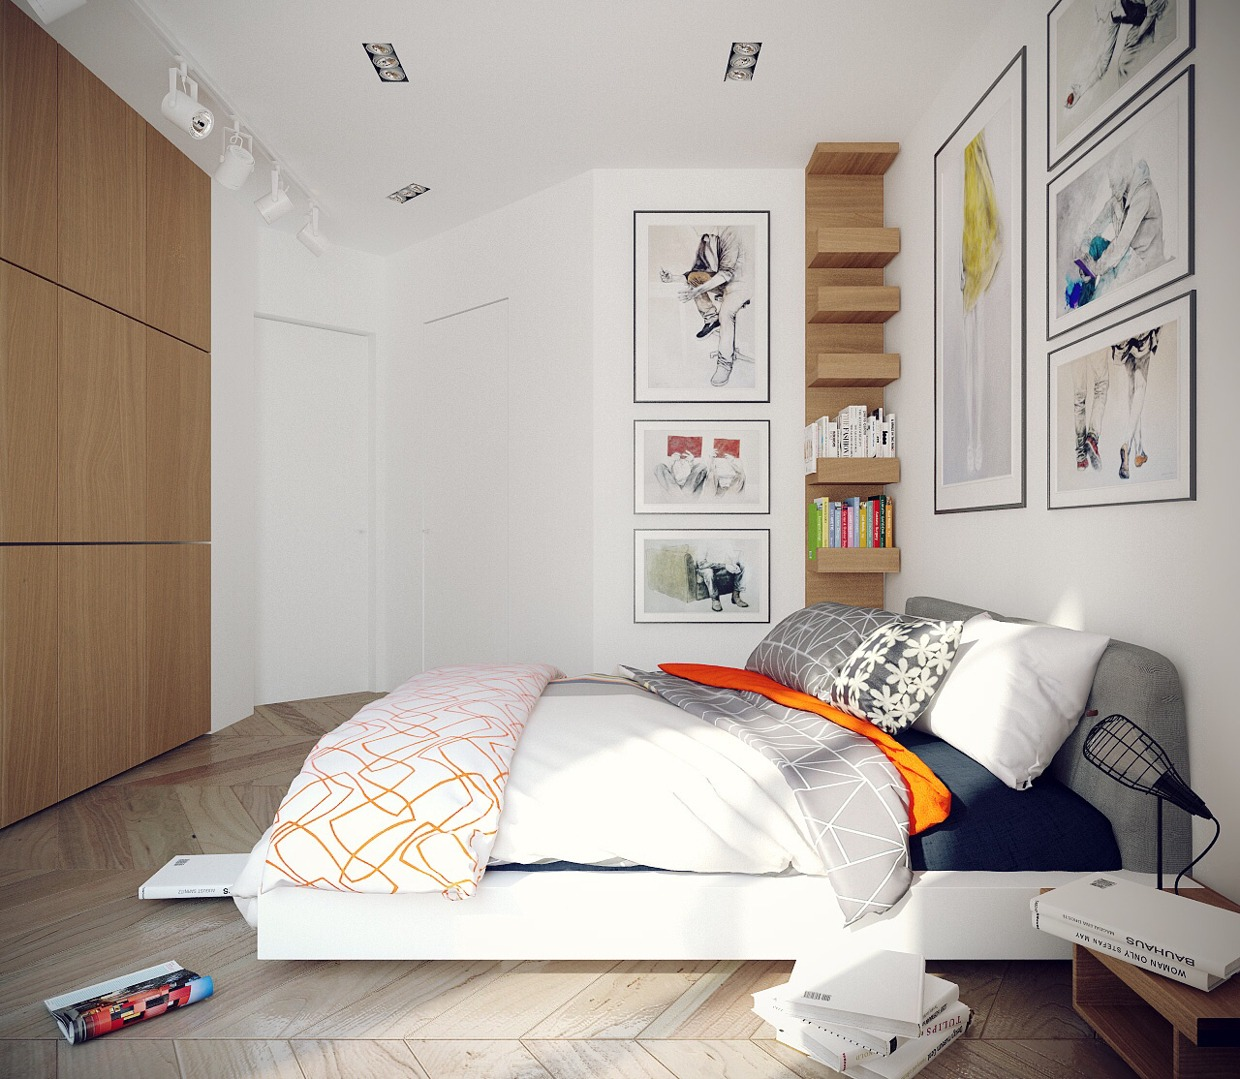 White Bedroom - Chic studio apartments with artsy accents